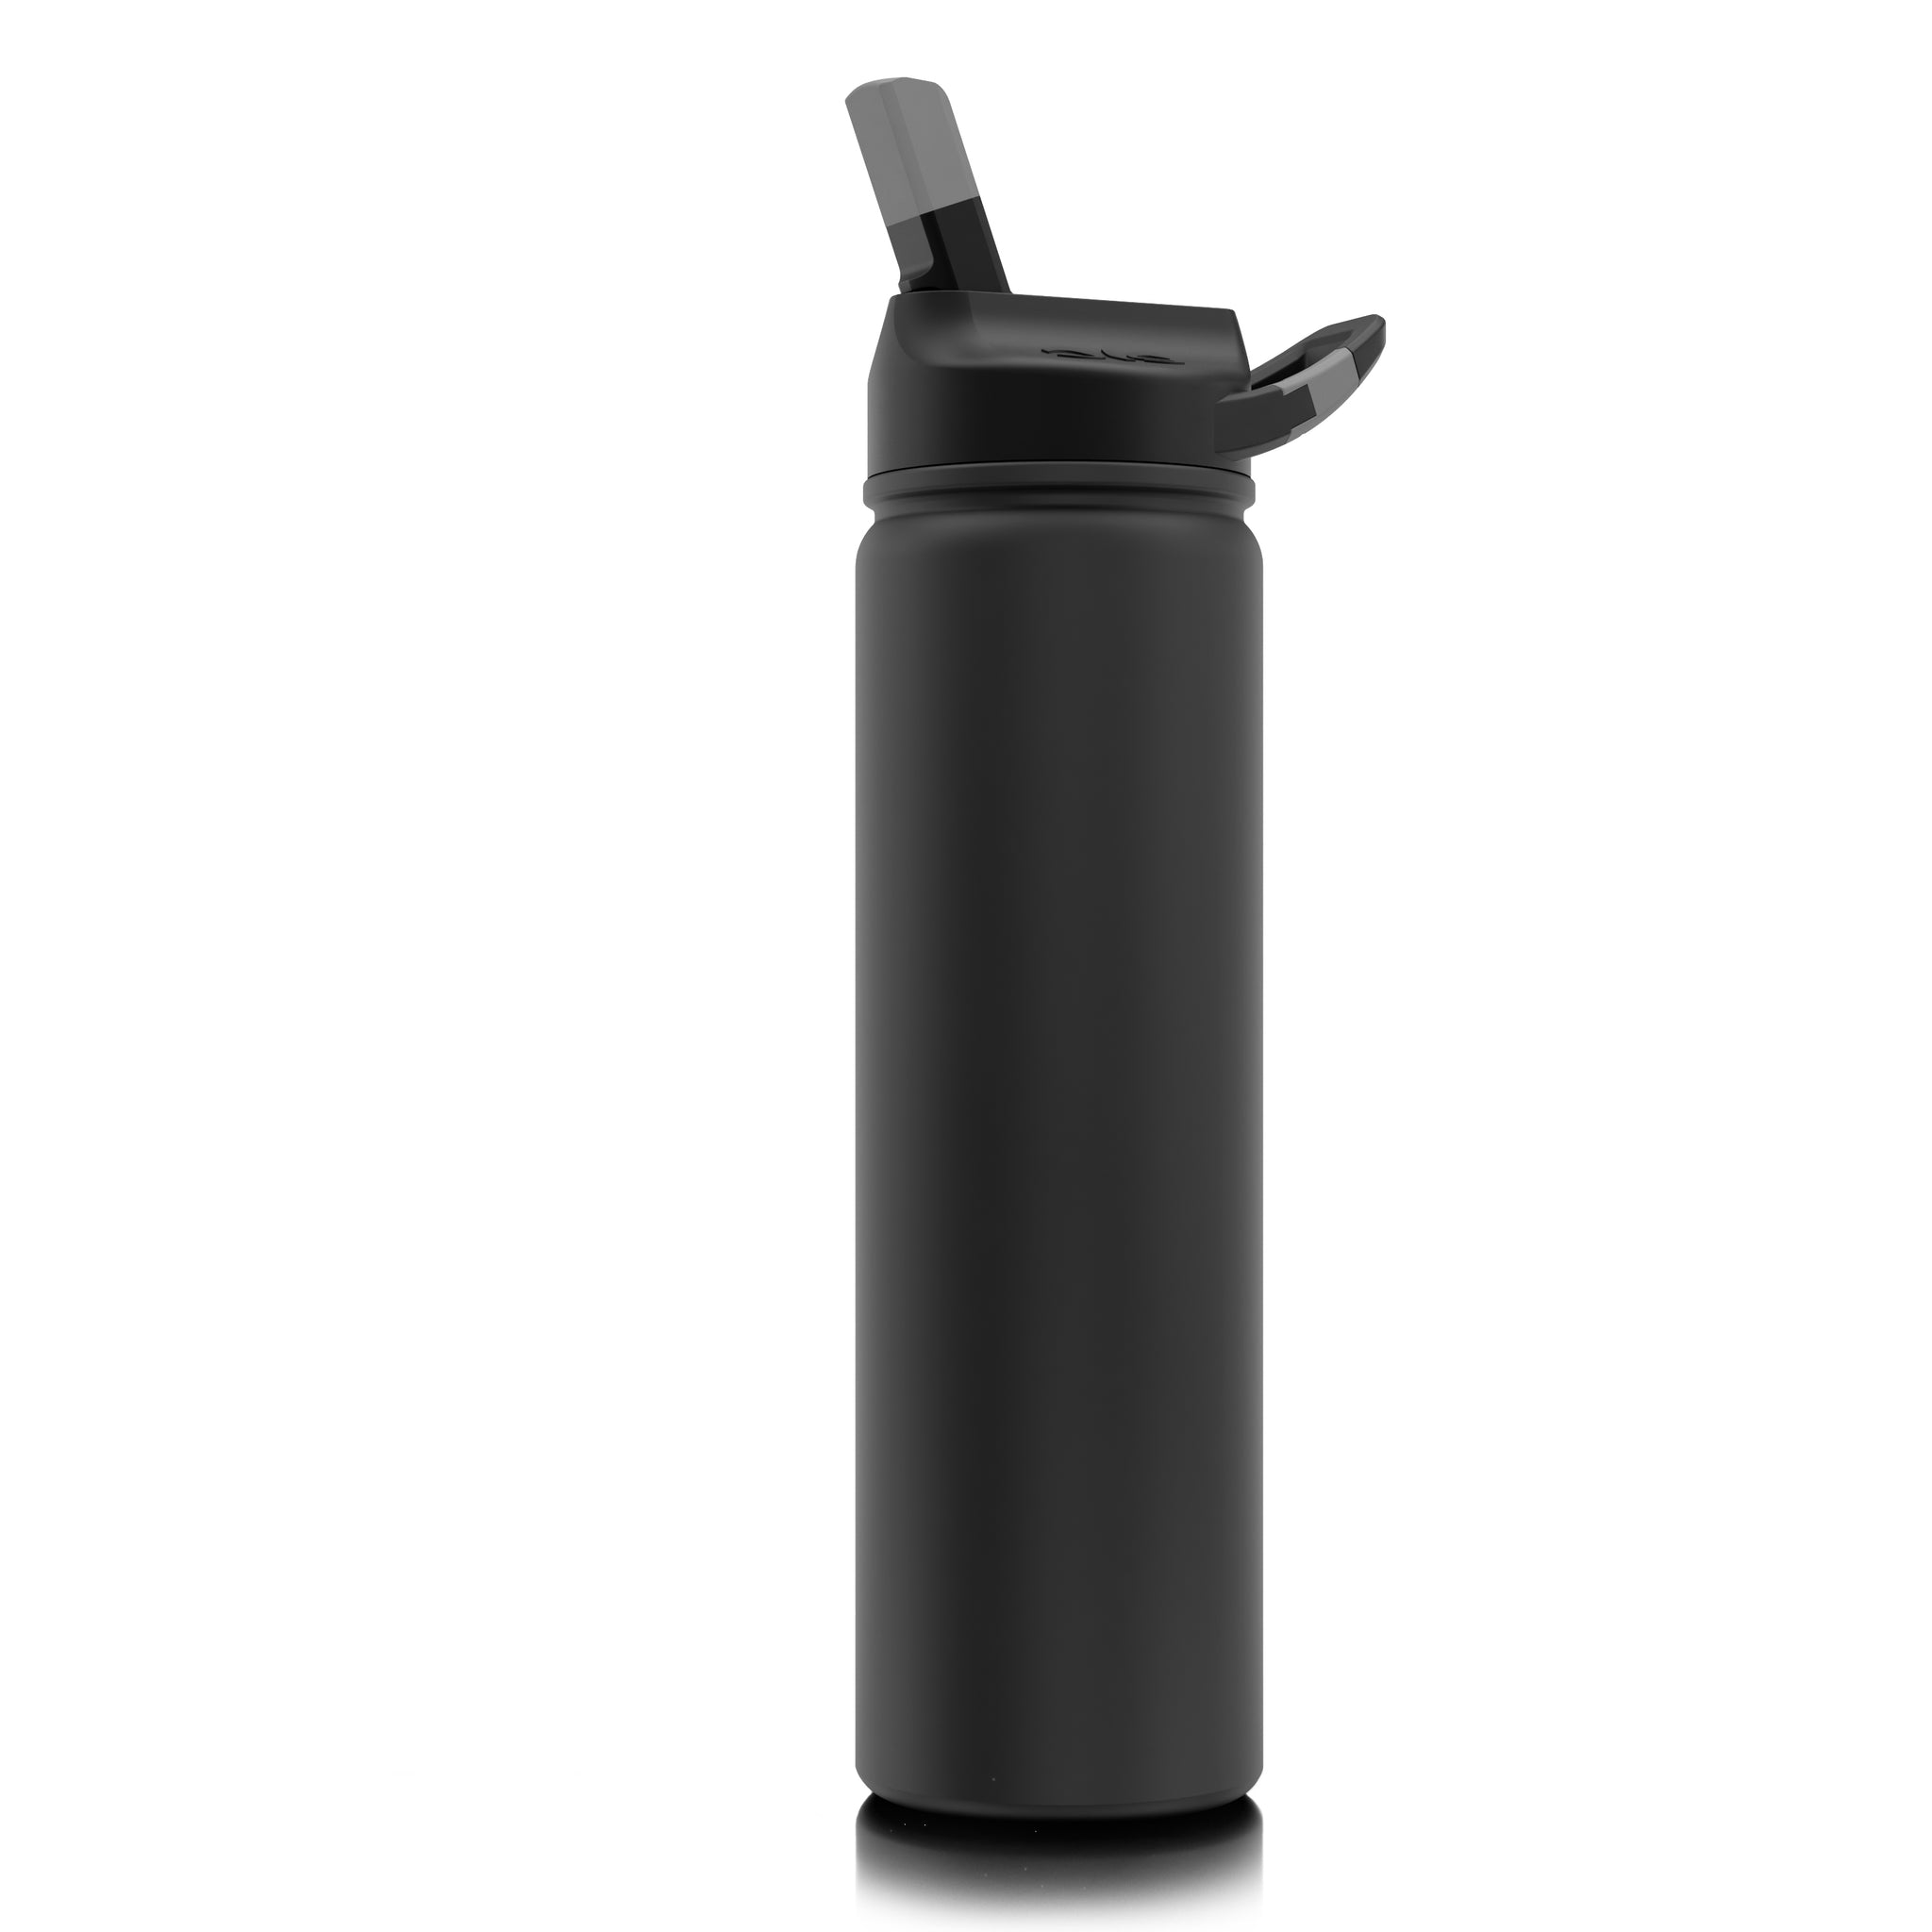 27 oz. Tuff Black (12 Pack)